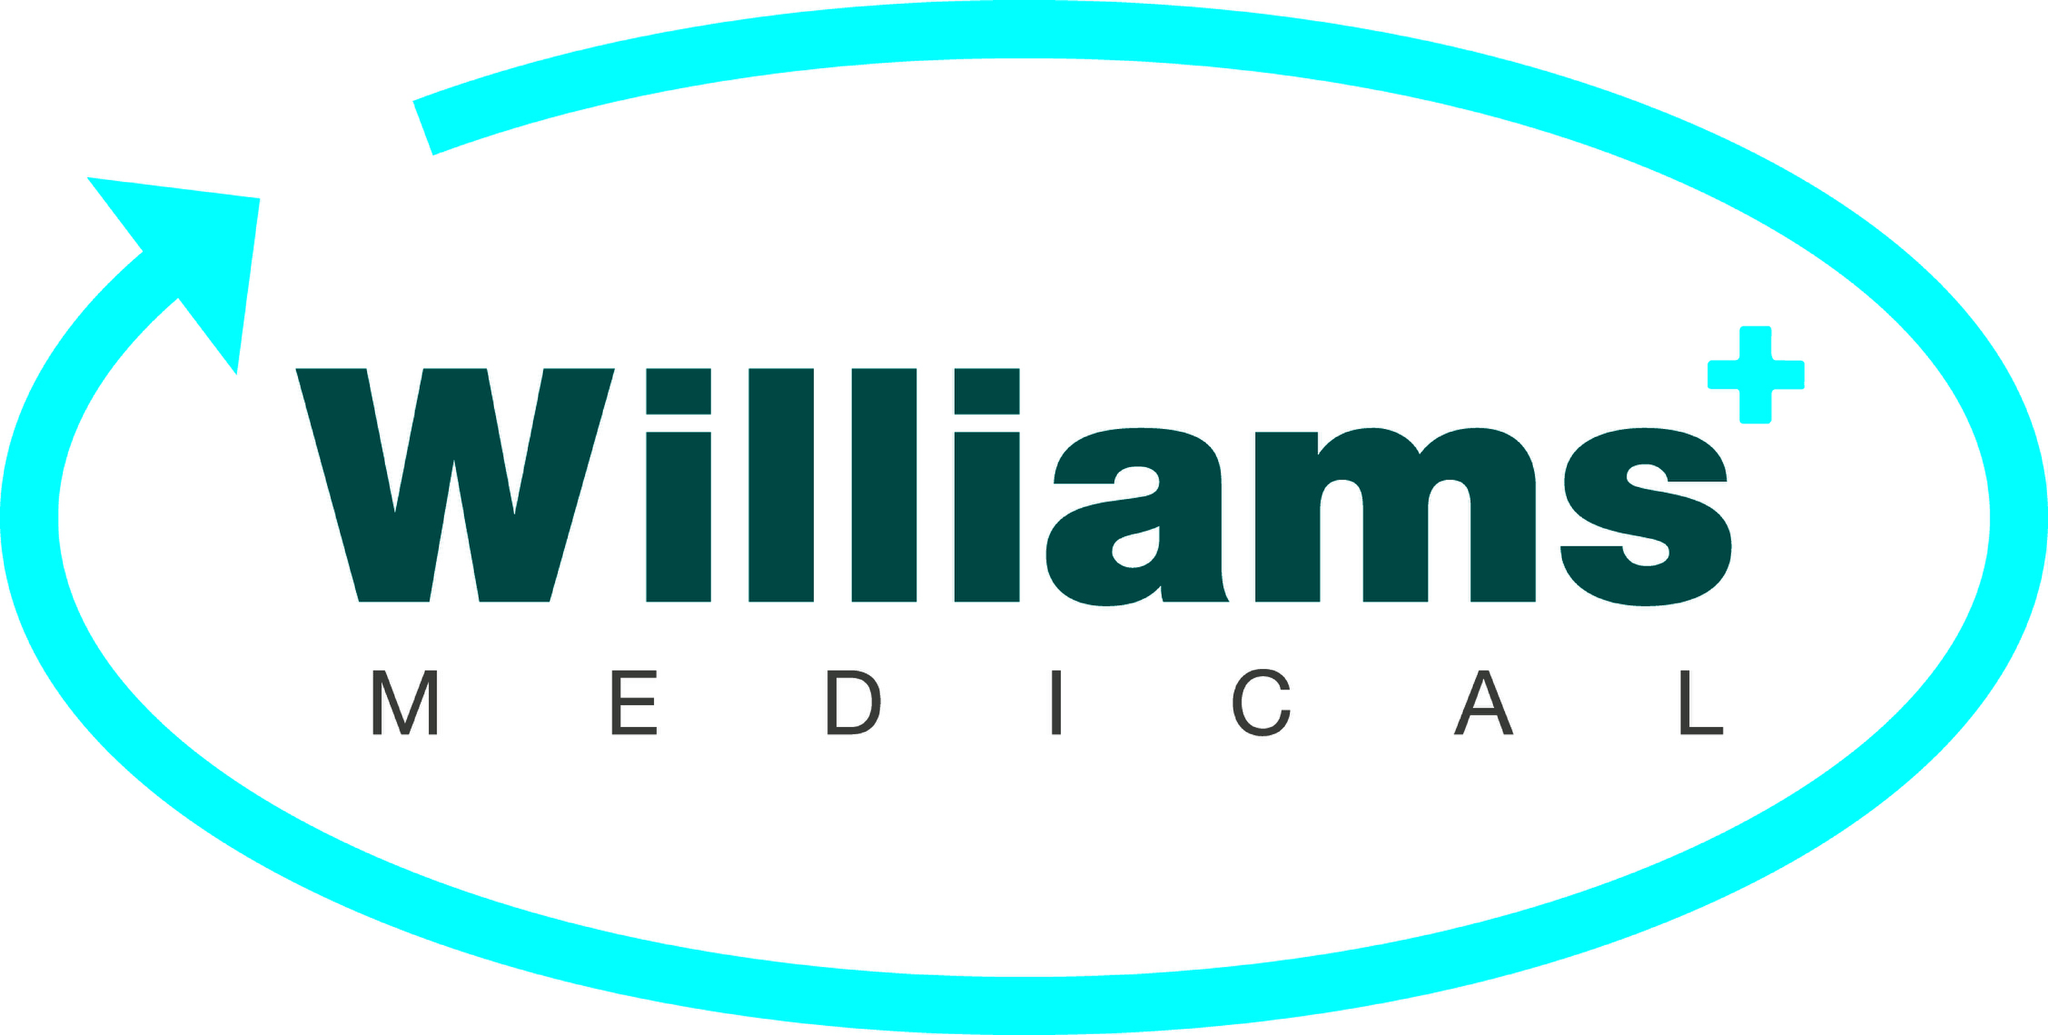 Williams Medical Supplies